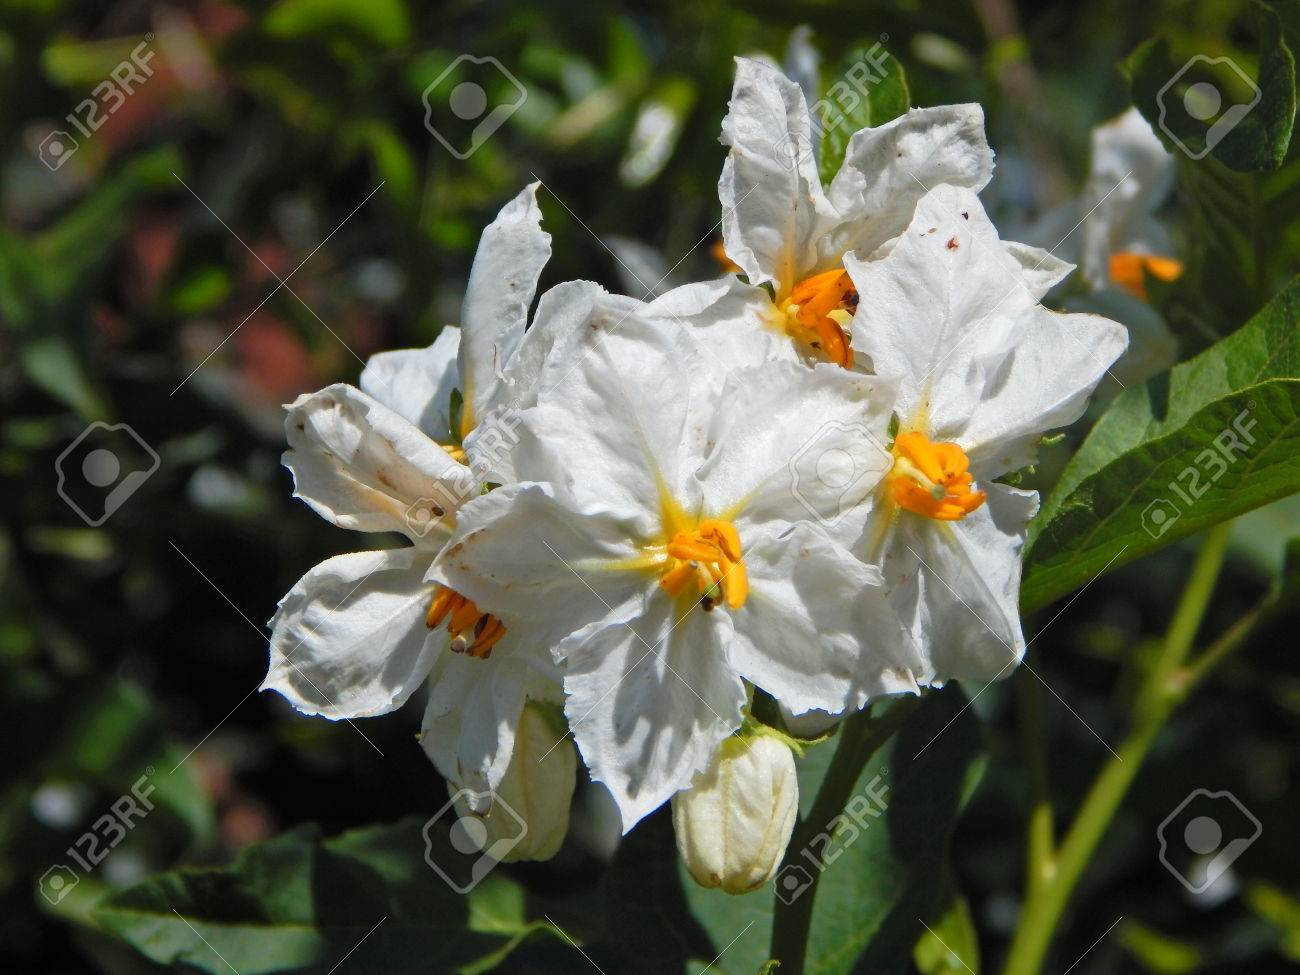 Beautiful White Flowers With Yellow Center Stock Photo Picture And